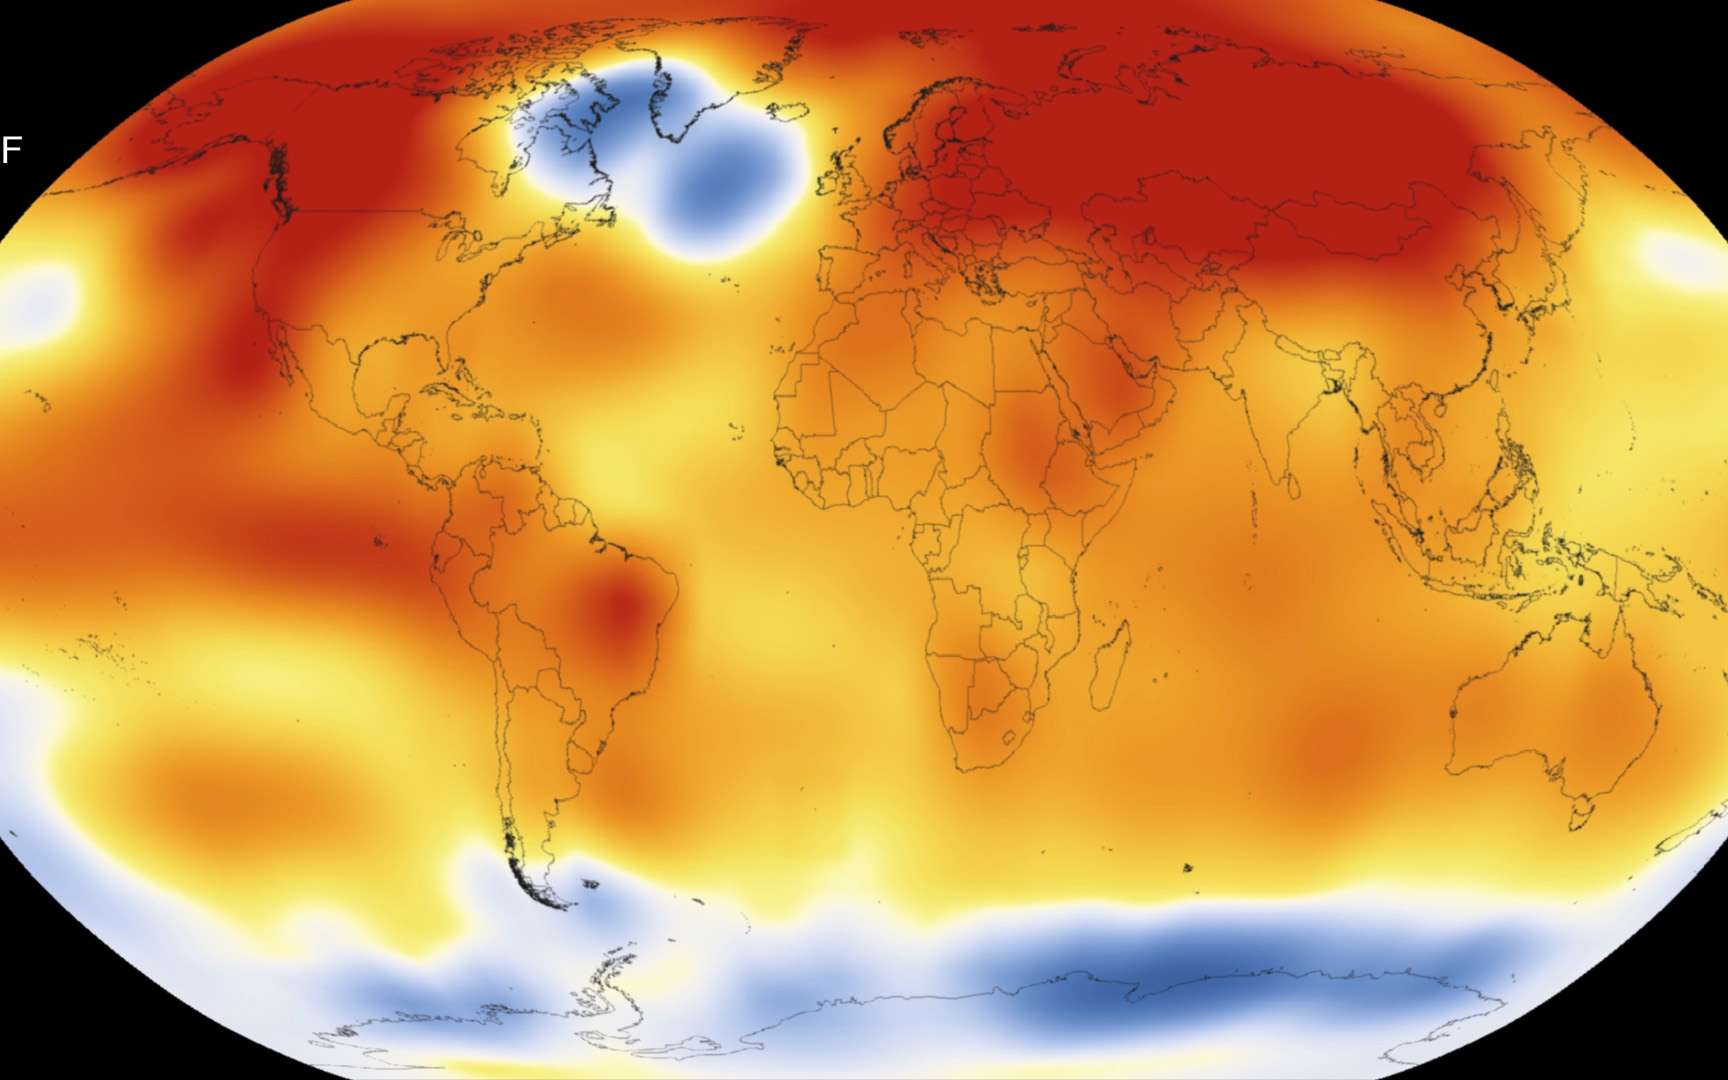 Carte des anomalies de température en 2015 en degré Fahrenheit. © Scientific Visualization Studio, Goddard Space Flight Center